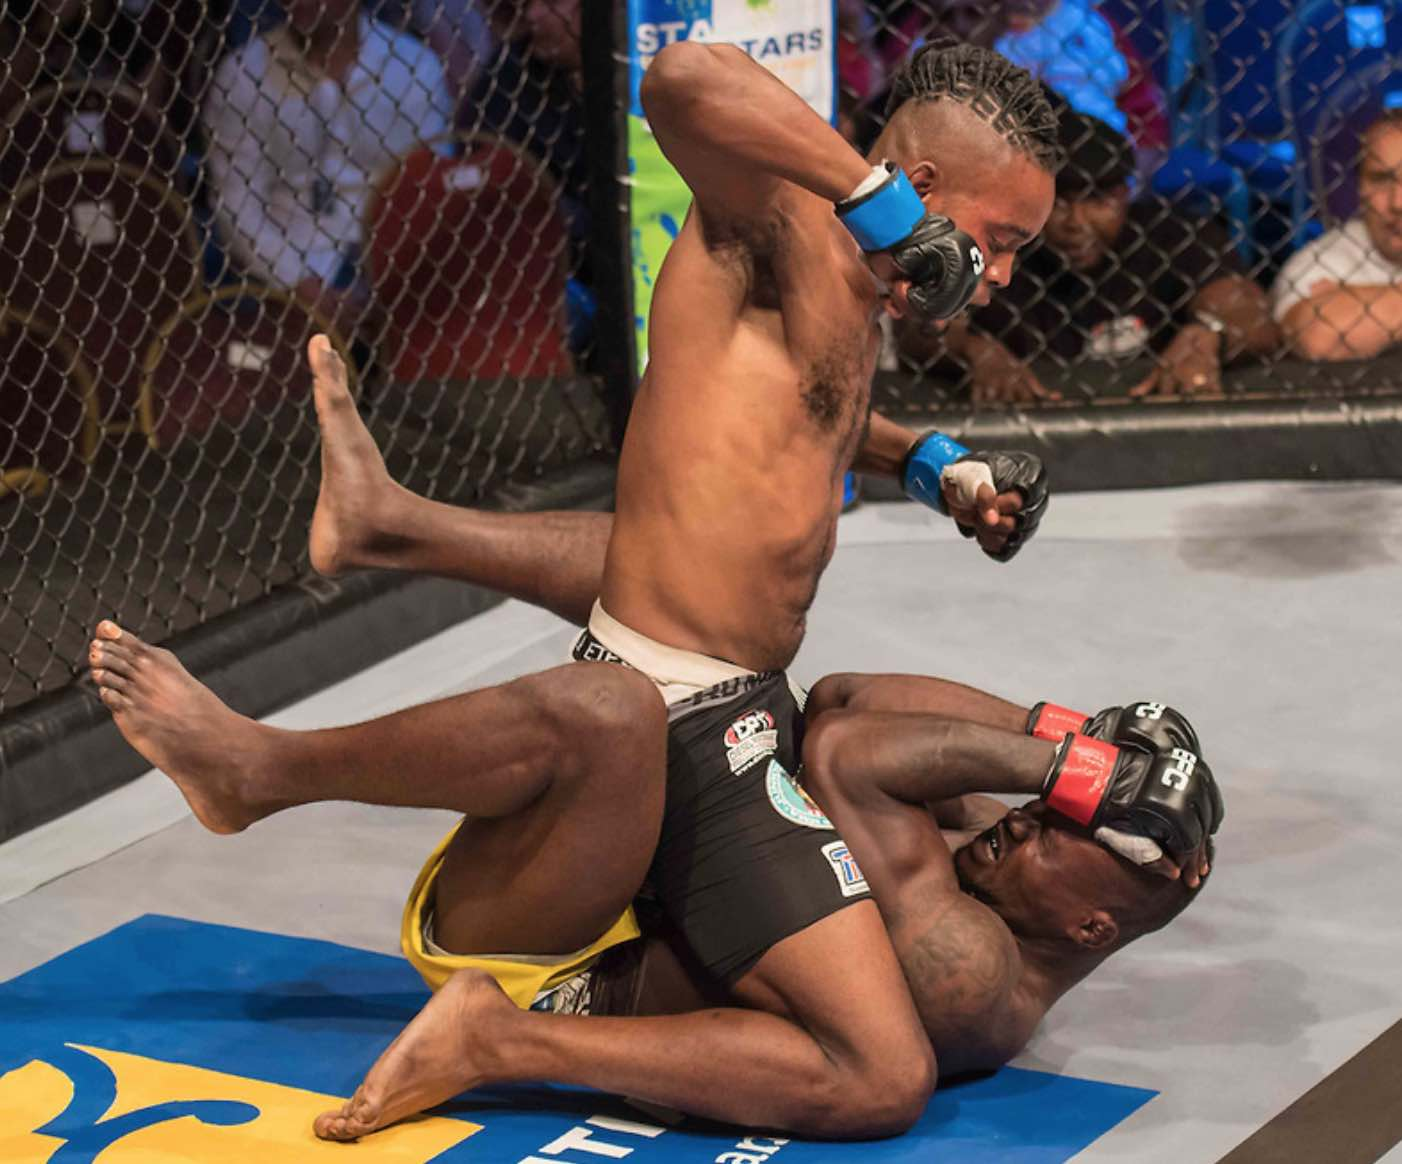 Mixed Martial Arts fighters Anicet Kanyeba and Gorilla Ossoko face each other at EFC 57